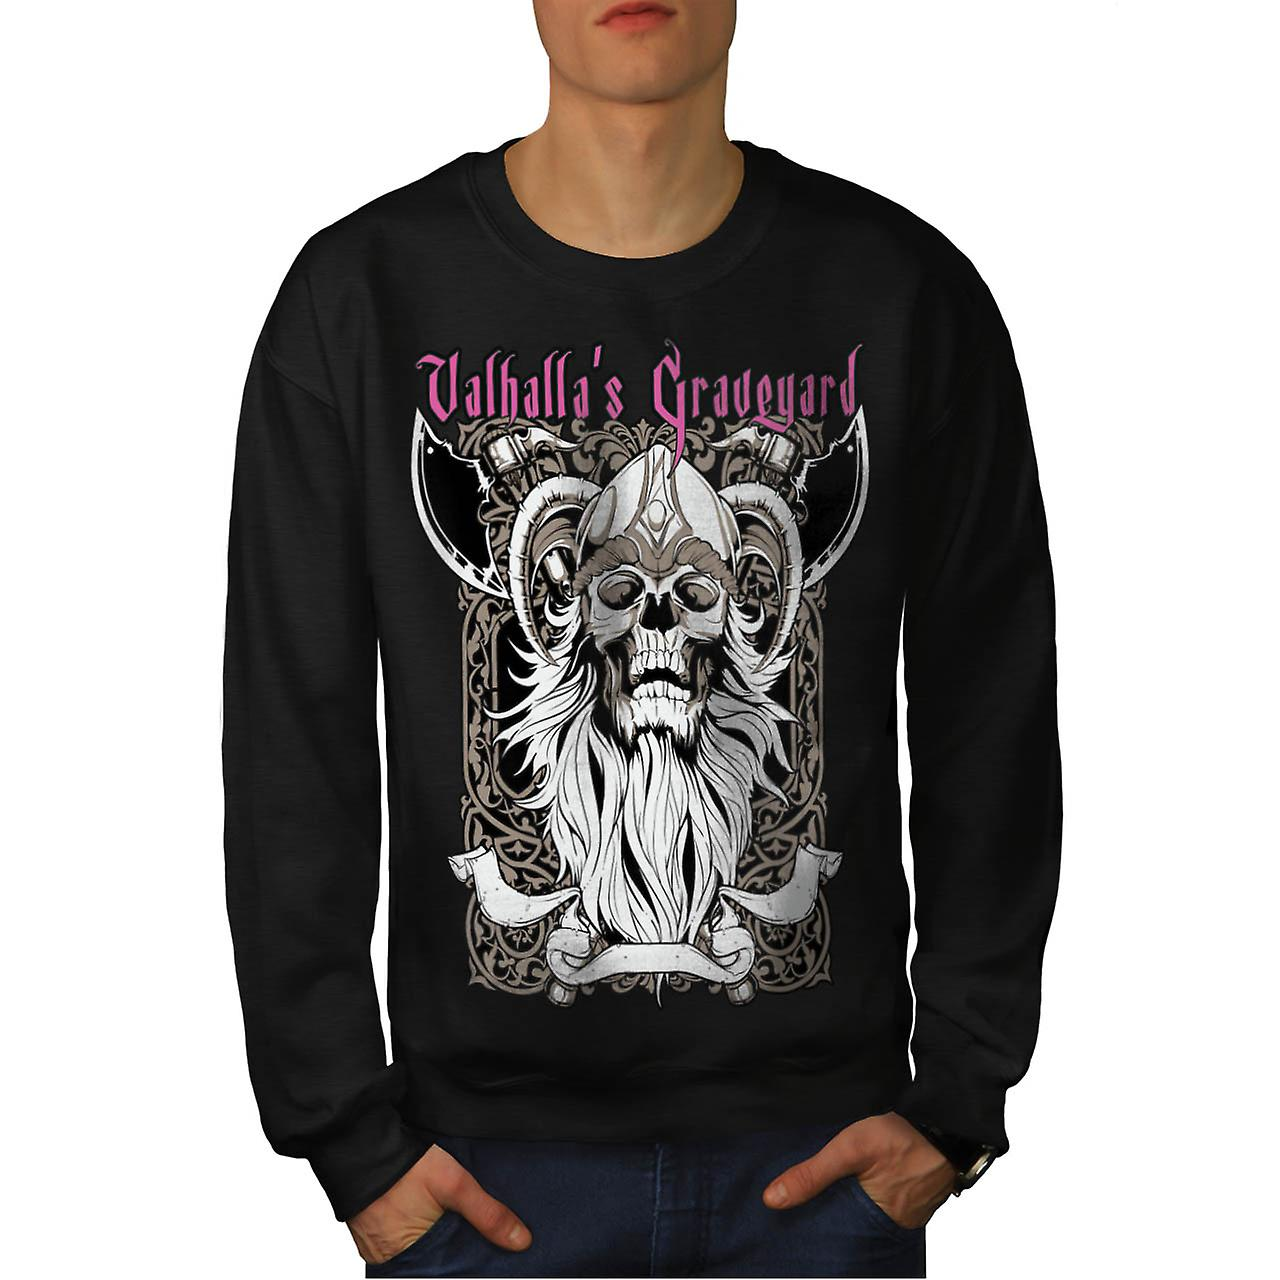 Valhalla Graveyard Monster Skull Men Black Sweatshirt | Wellcoda